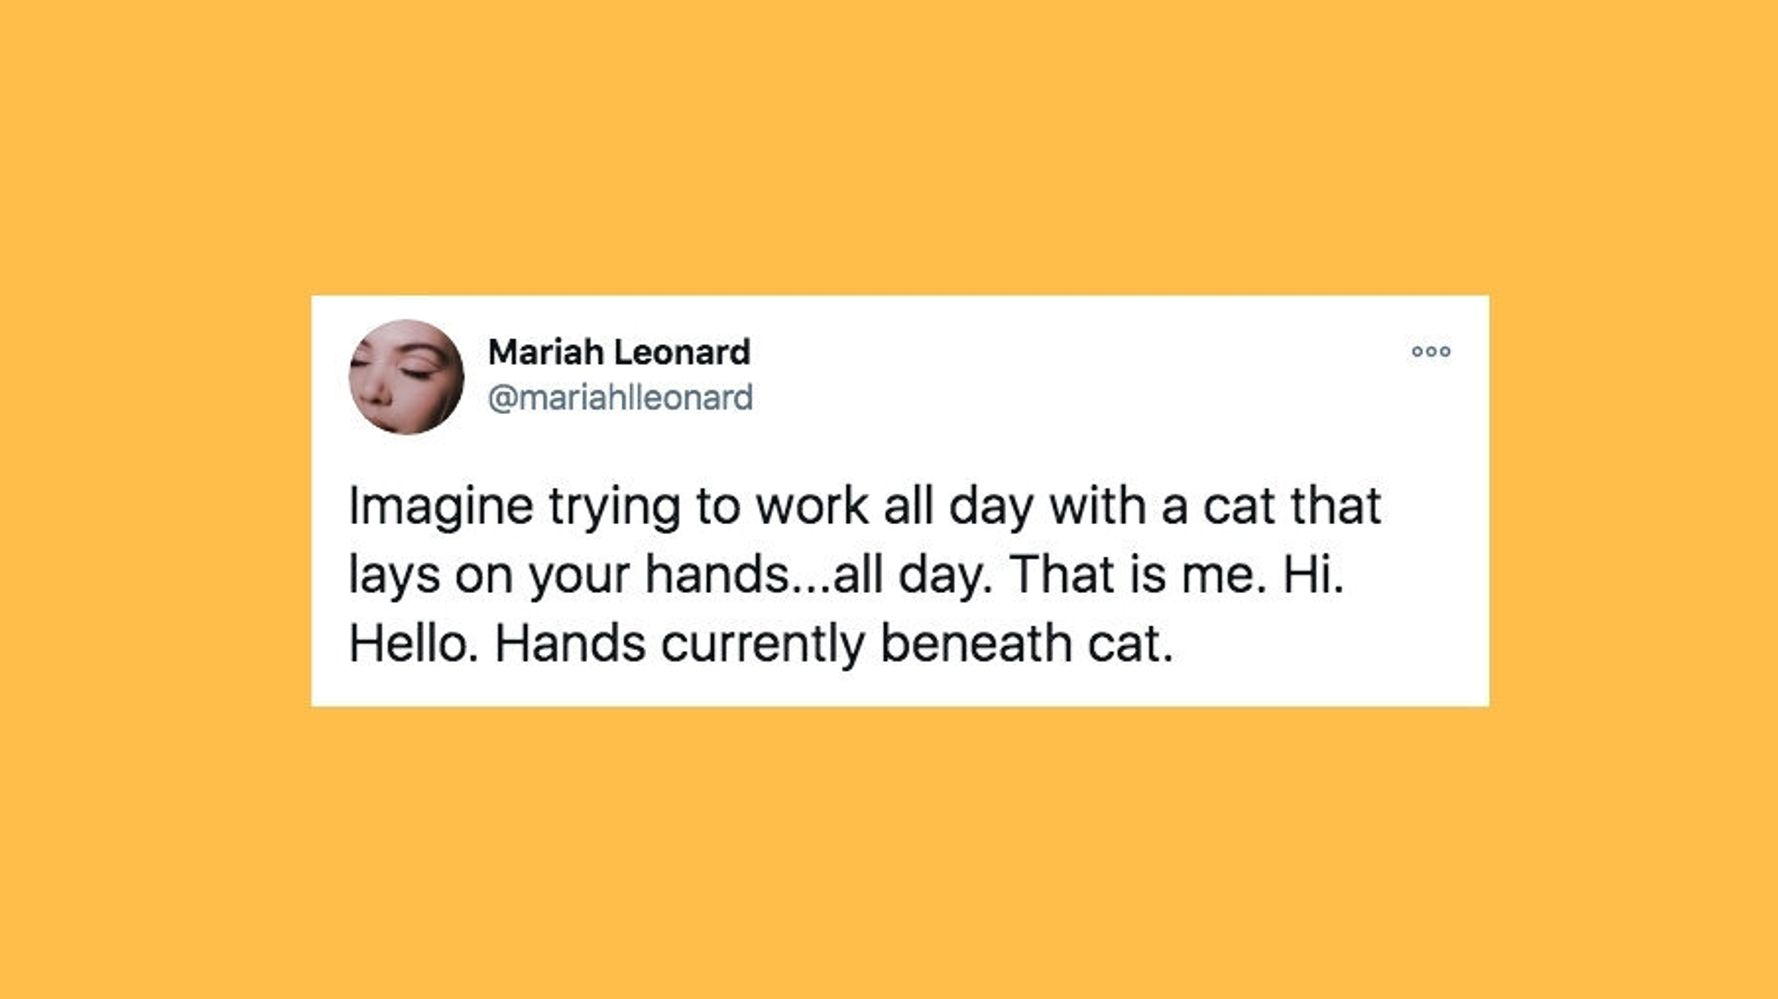 28 Of The Funniest Tweets About Cats And Dogs This Week (Nov. 21-27)